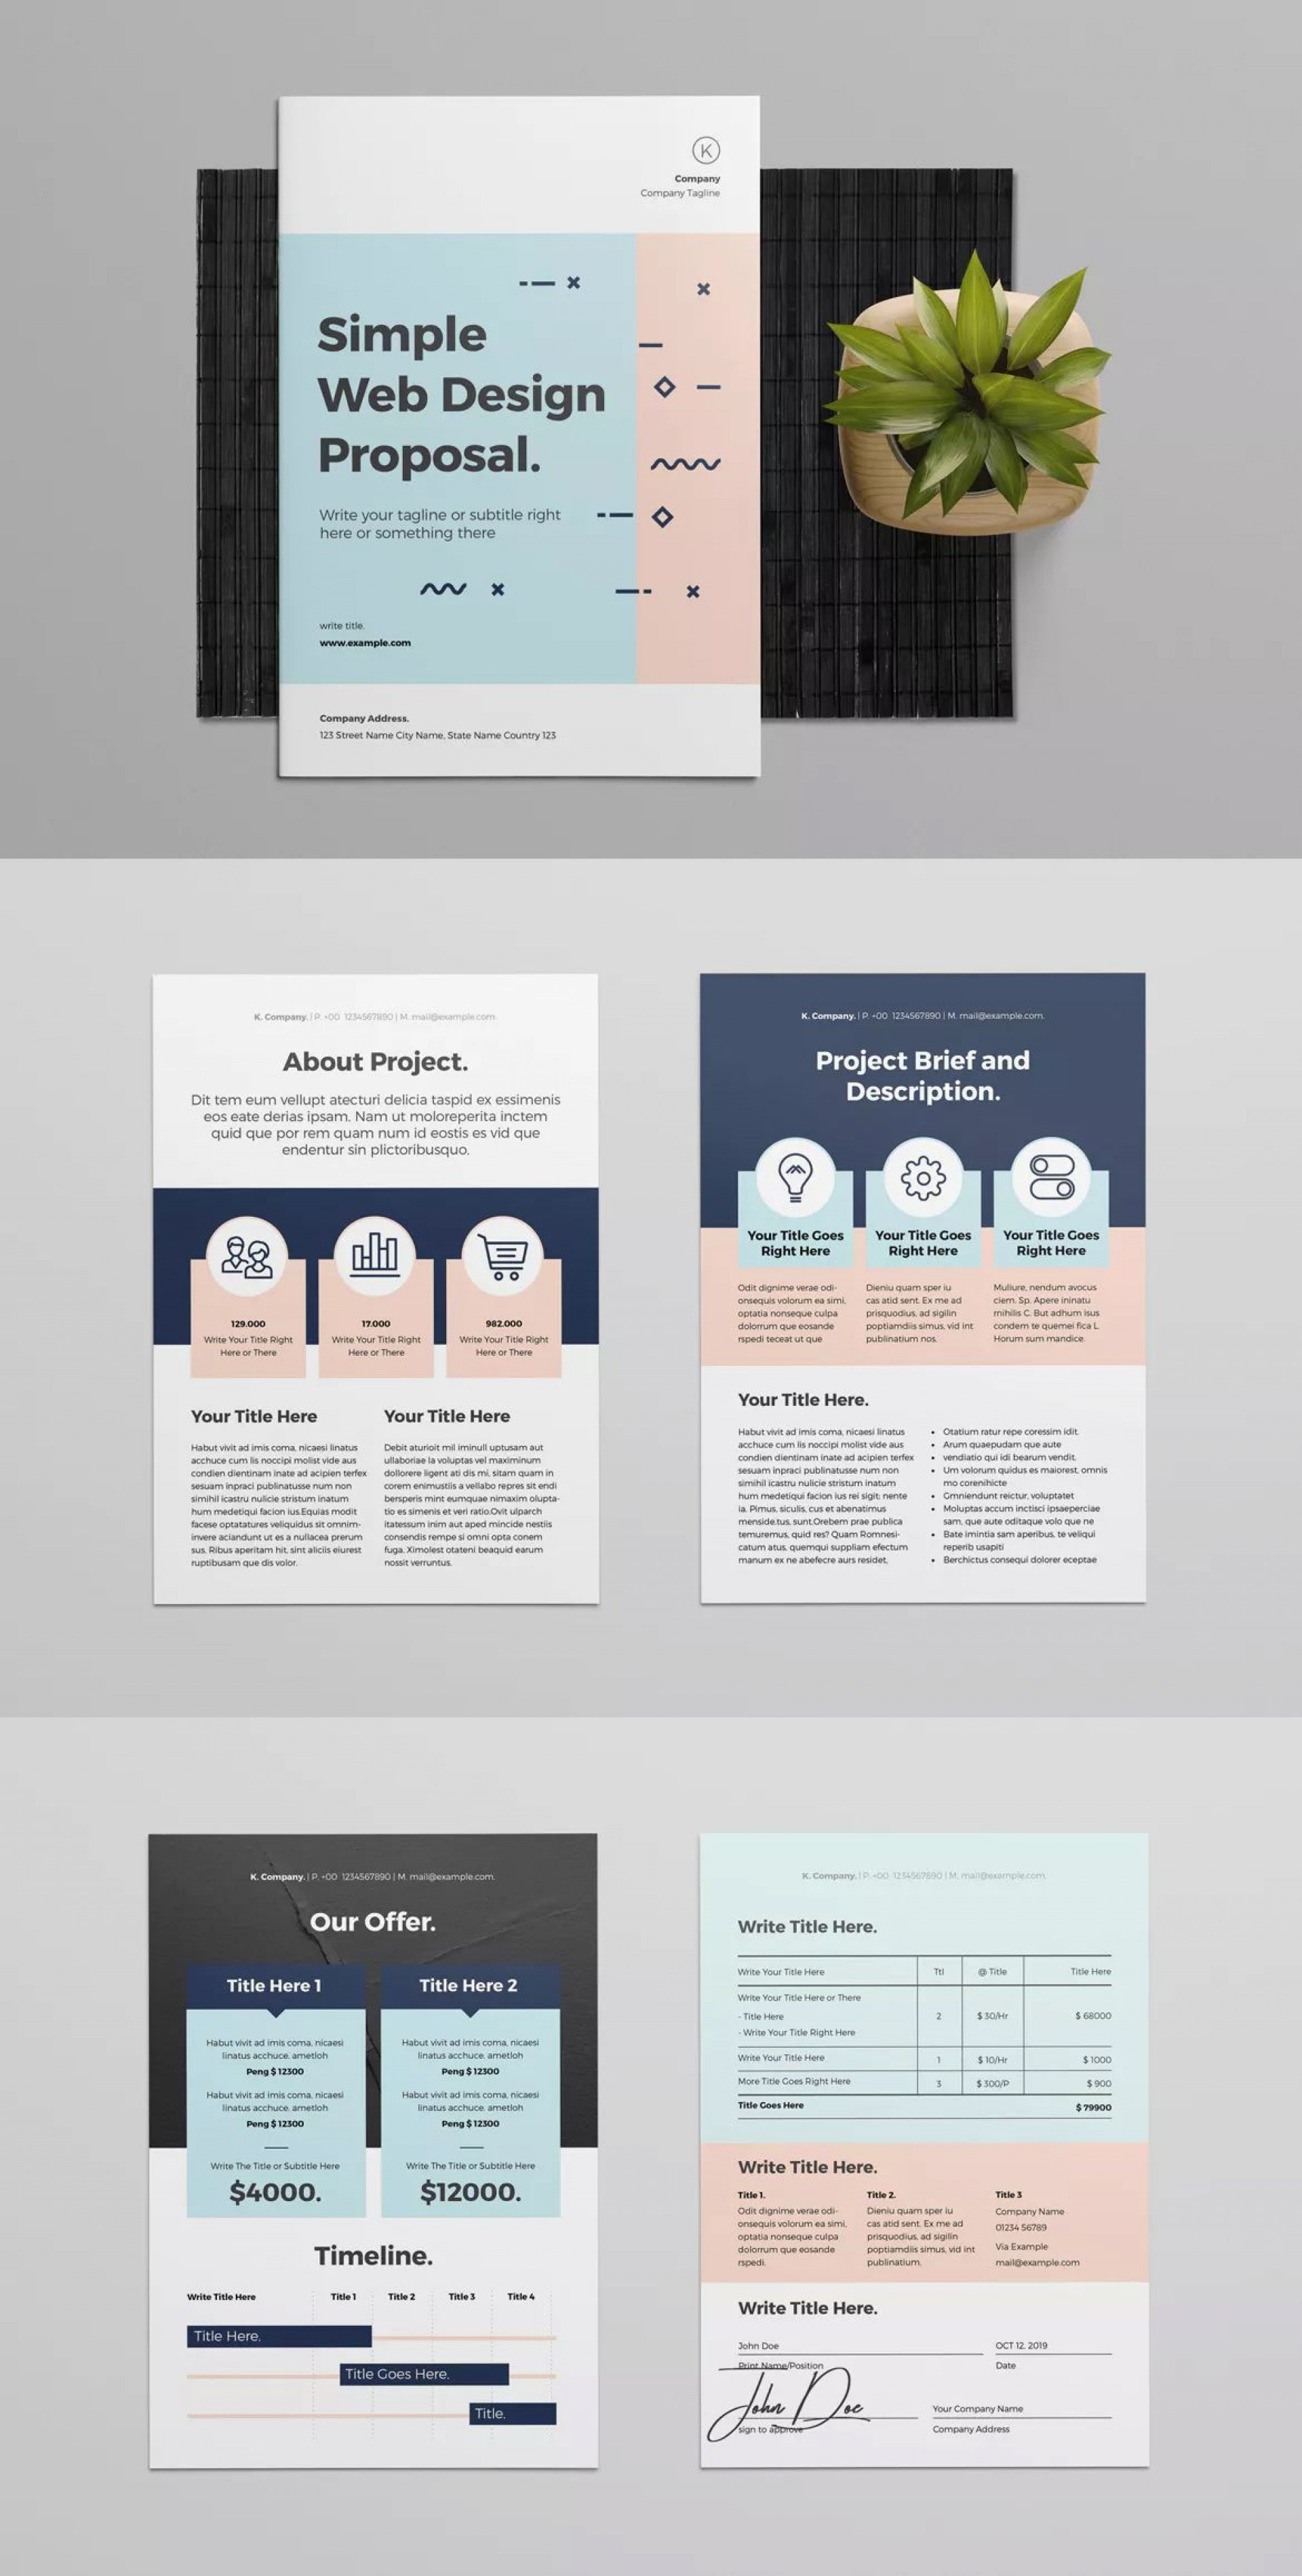 002 Rare Web Design Proposal Template High Definition  Designer Writing Word Document Simple1920